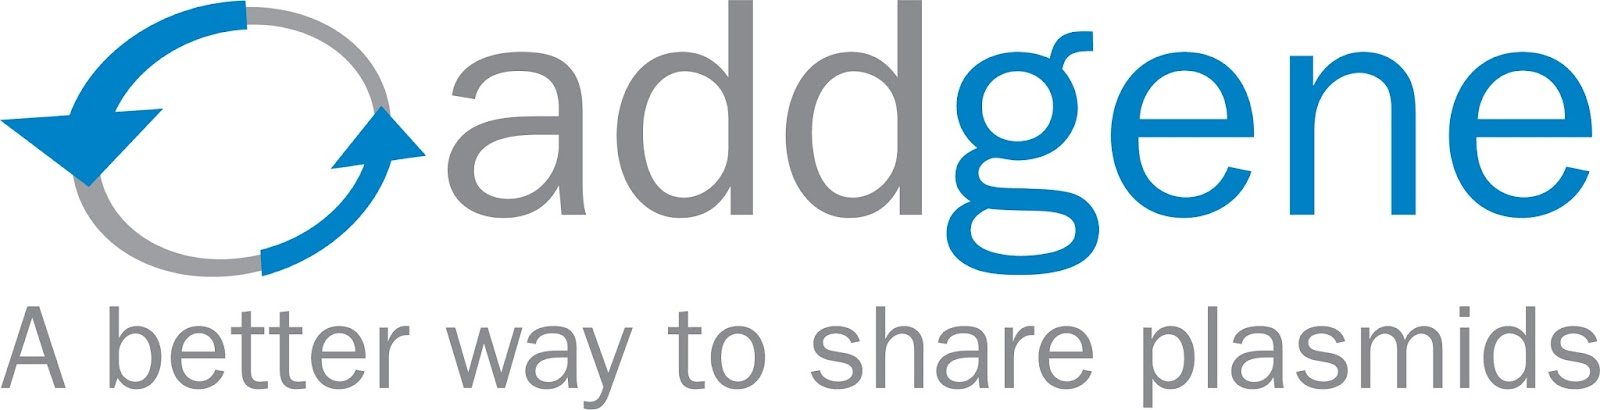 Addgene Logo - A better way to share plasmids.jpg